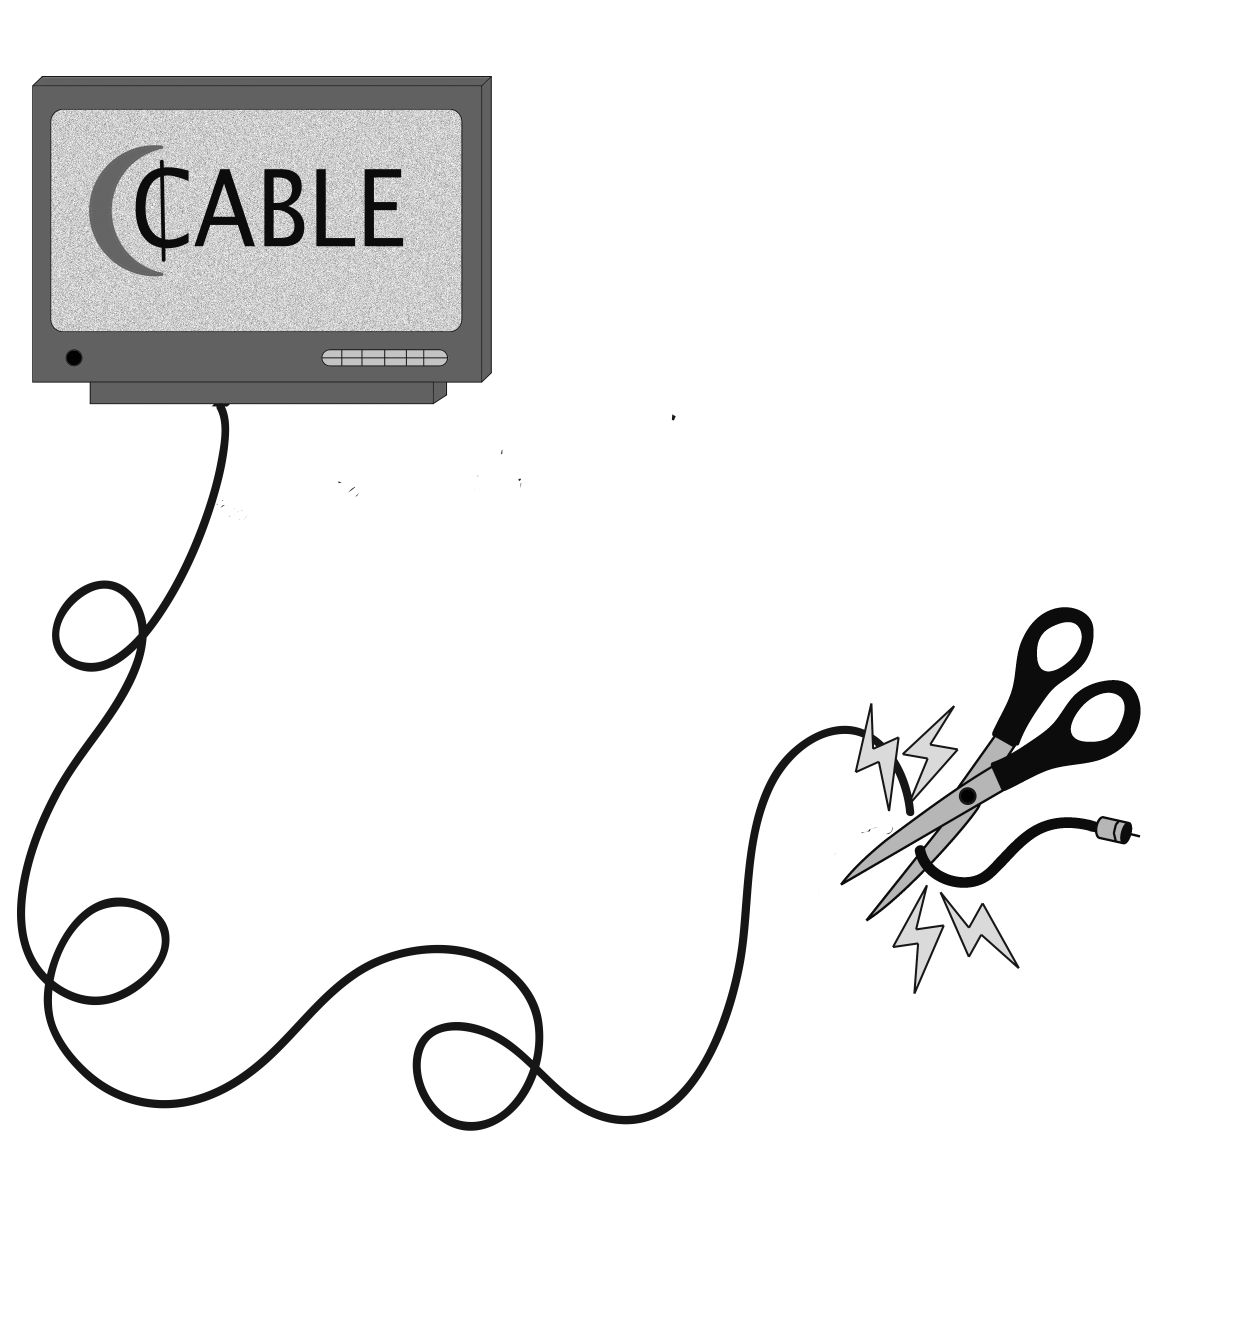 Cable: a dying breed amongst TV watchers